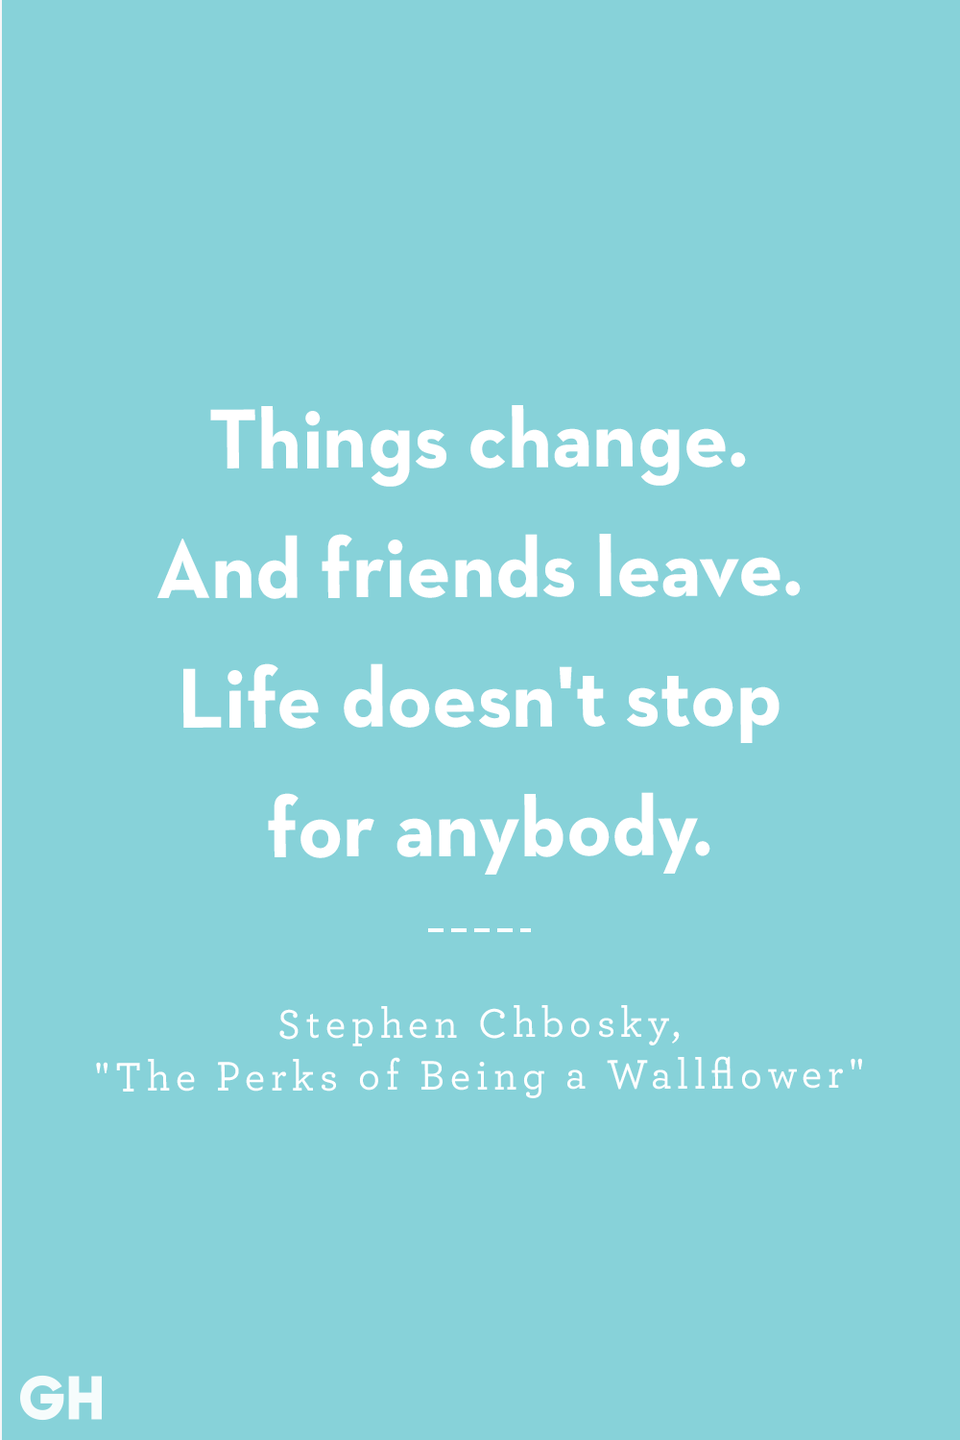 <p>Things change. And friends leave. Life doesn't stop for anybody.</p>